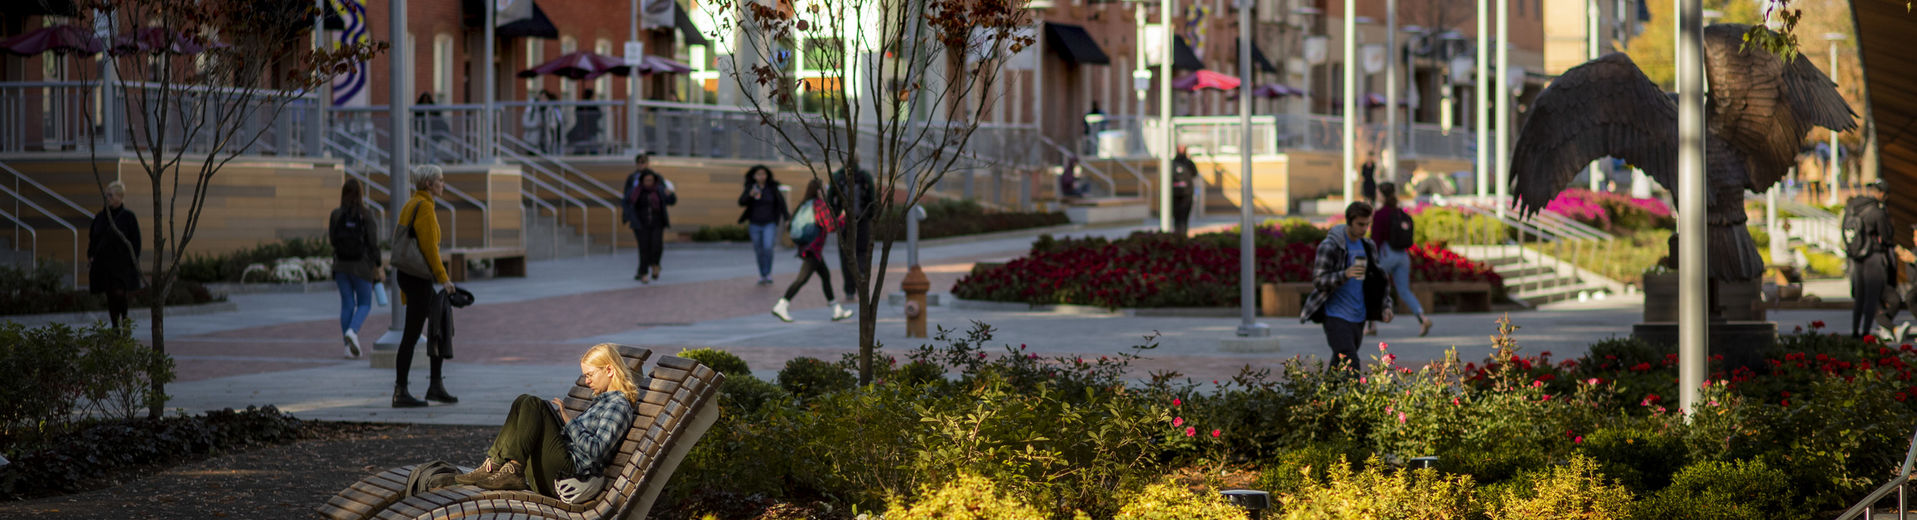 Students walking through O'Connor Plaza on a sunny fall day.